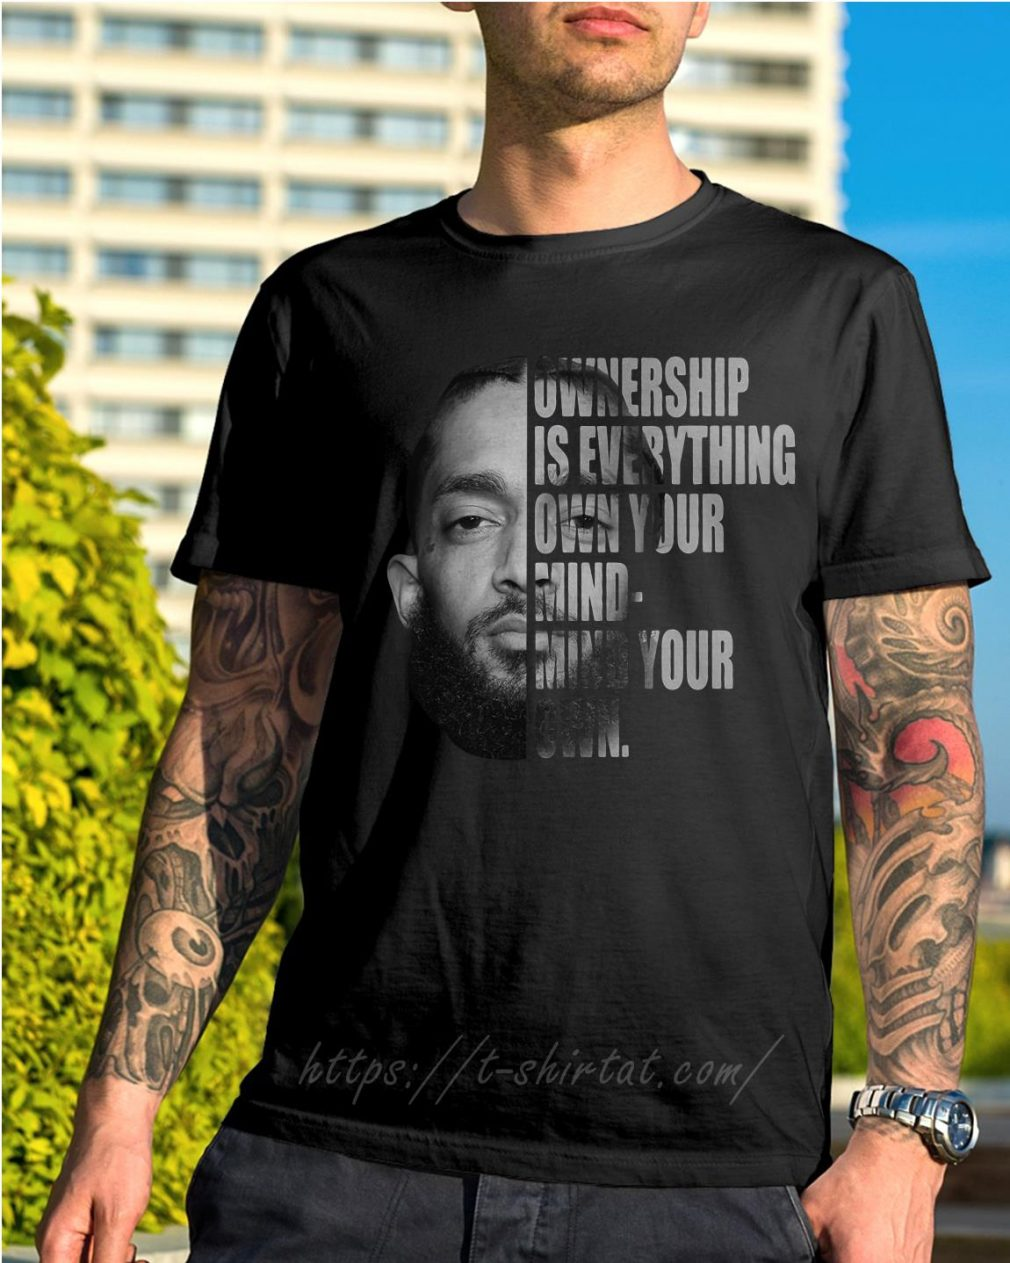 Nipsey Hussle ownership is everything own your mind-mind your own shirt